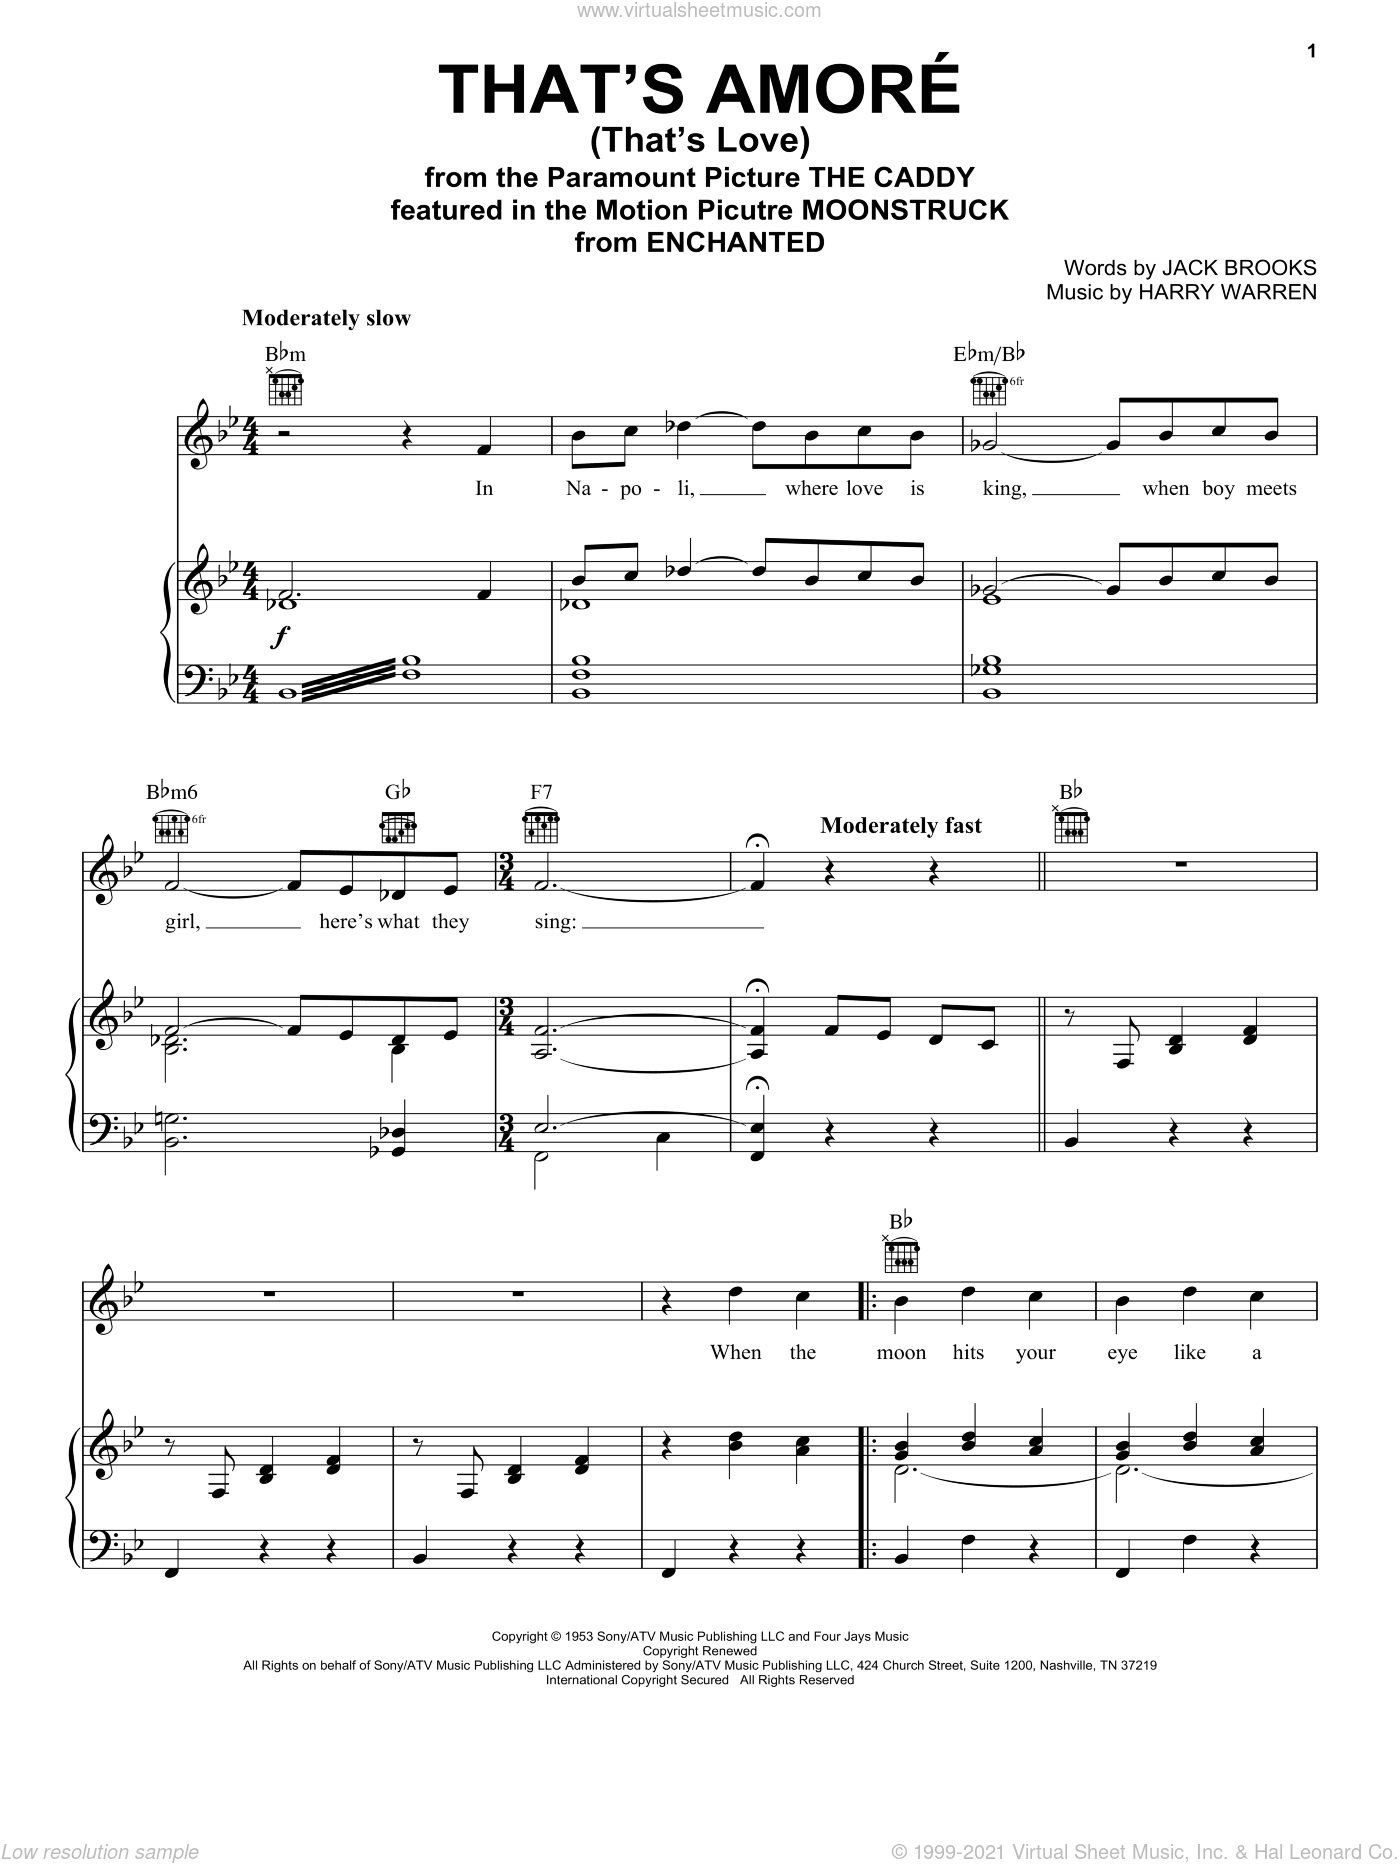 That's Amore (That's Love) sheet music for voice, piano or guitar by Dean Martin, Enchanted (Movie), Harry Warren and Jack Brooks, wedding score, intermediate skill level